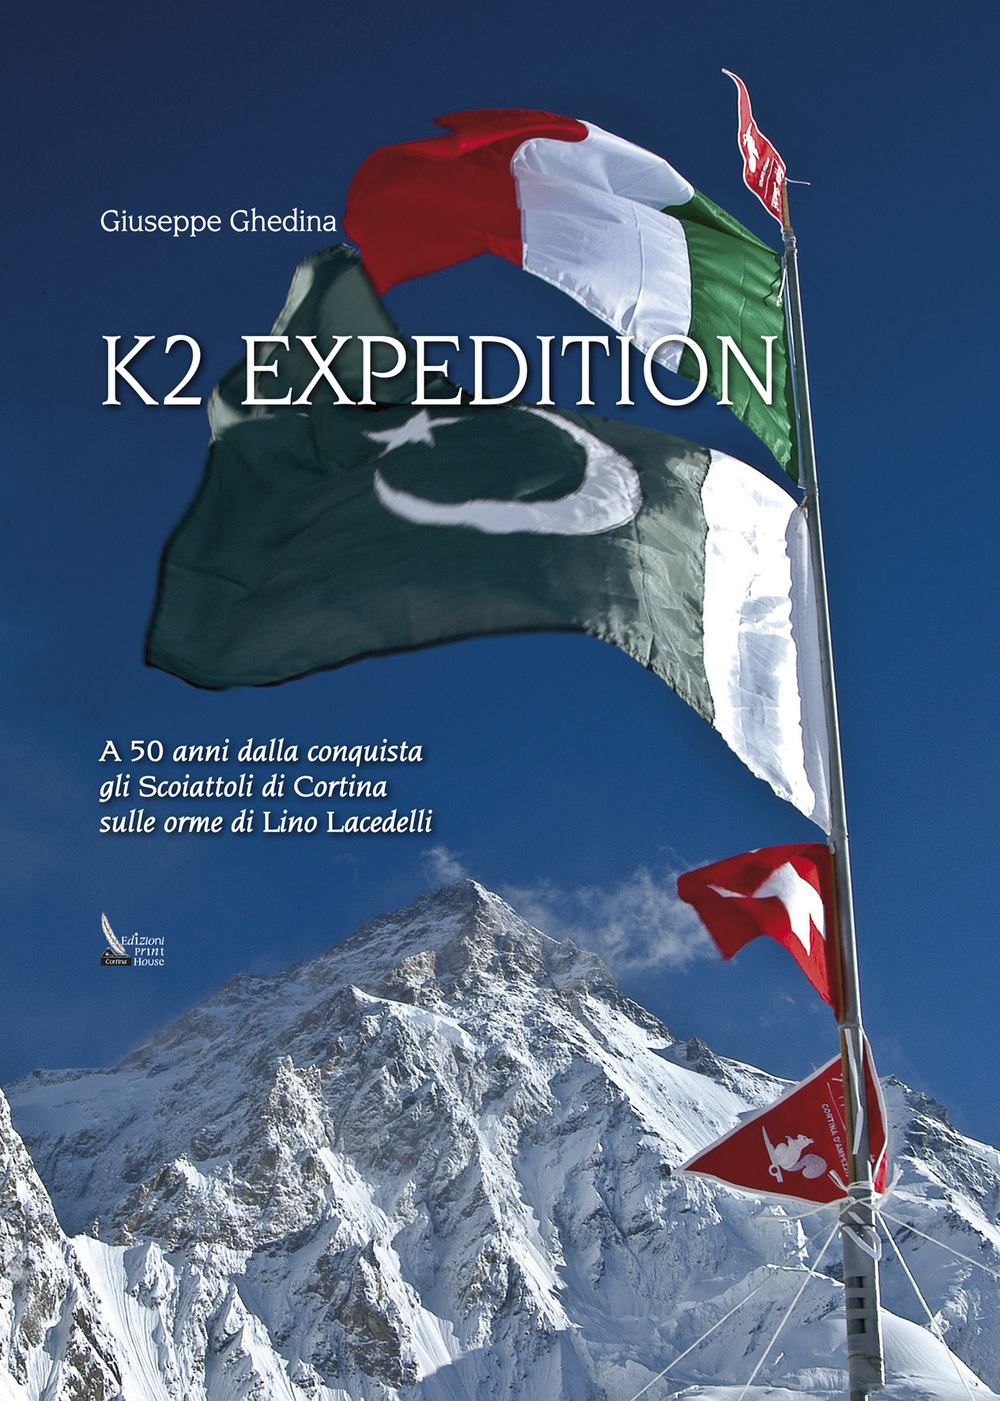 K2 EXPEDITION 1954-2004 Giuseppe Ghedina Fotografo - 001.jpg